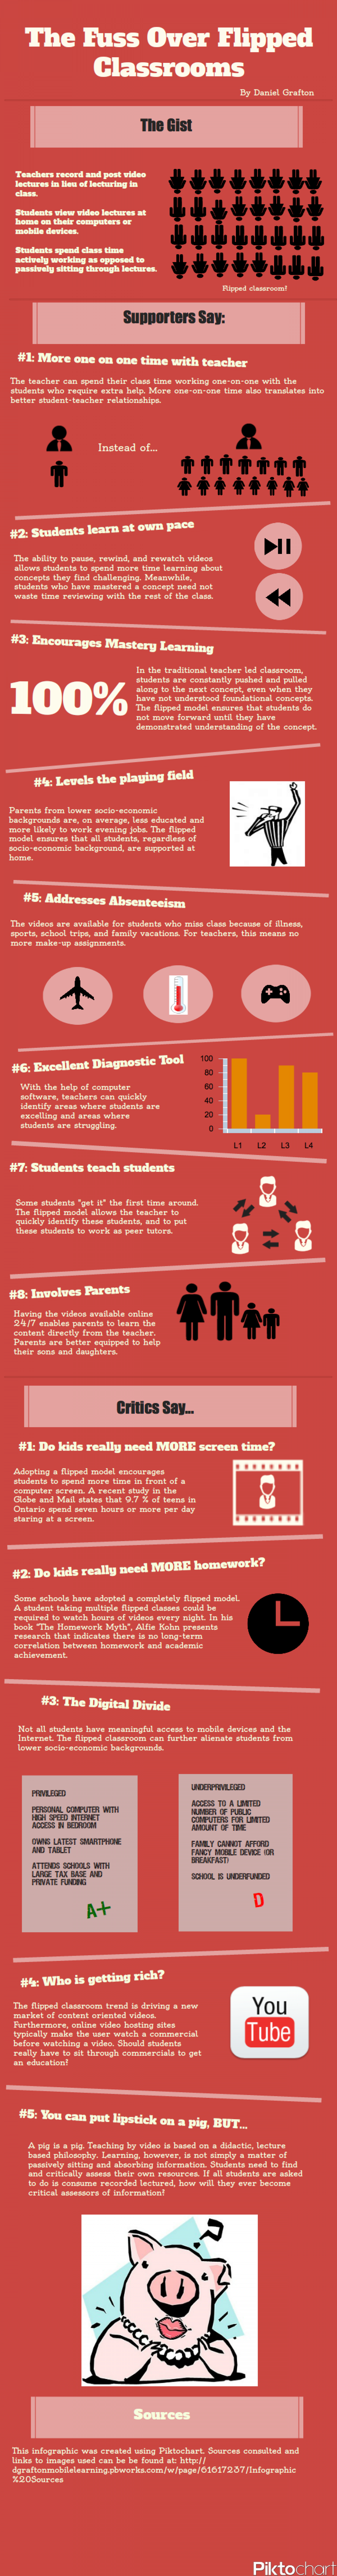 The Fuss Over Flipped Classrooms Infographic